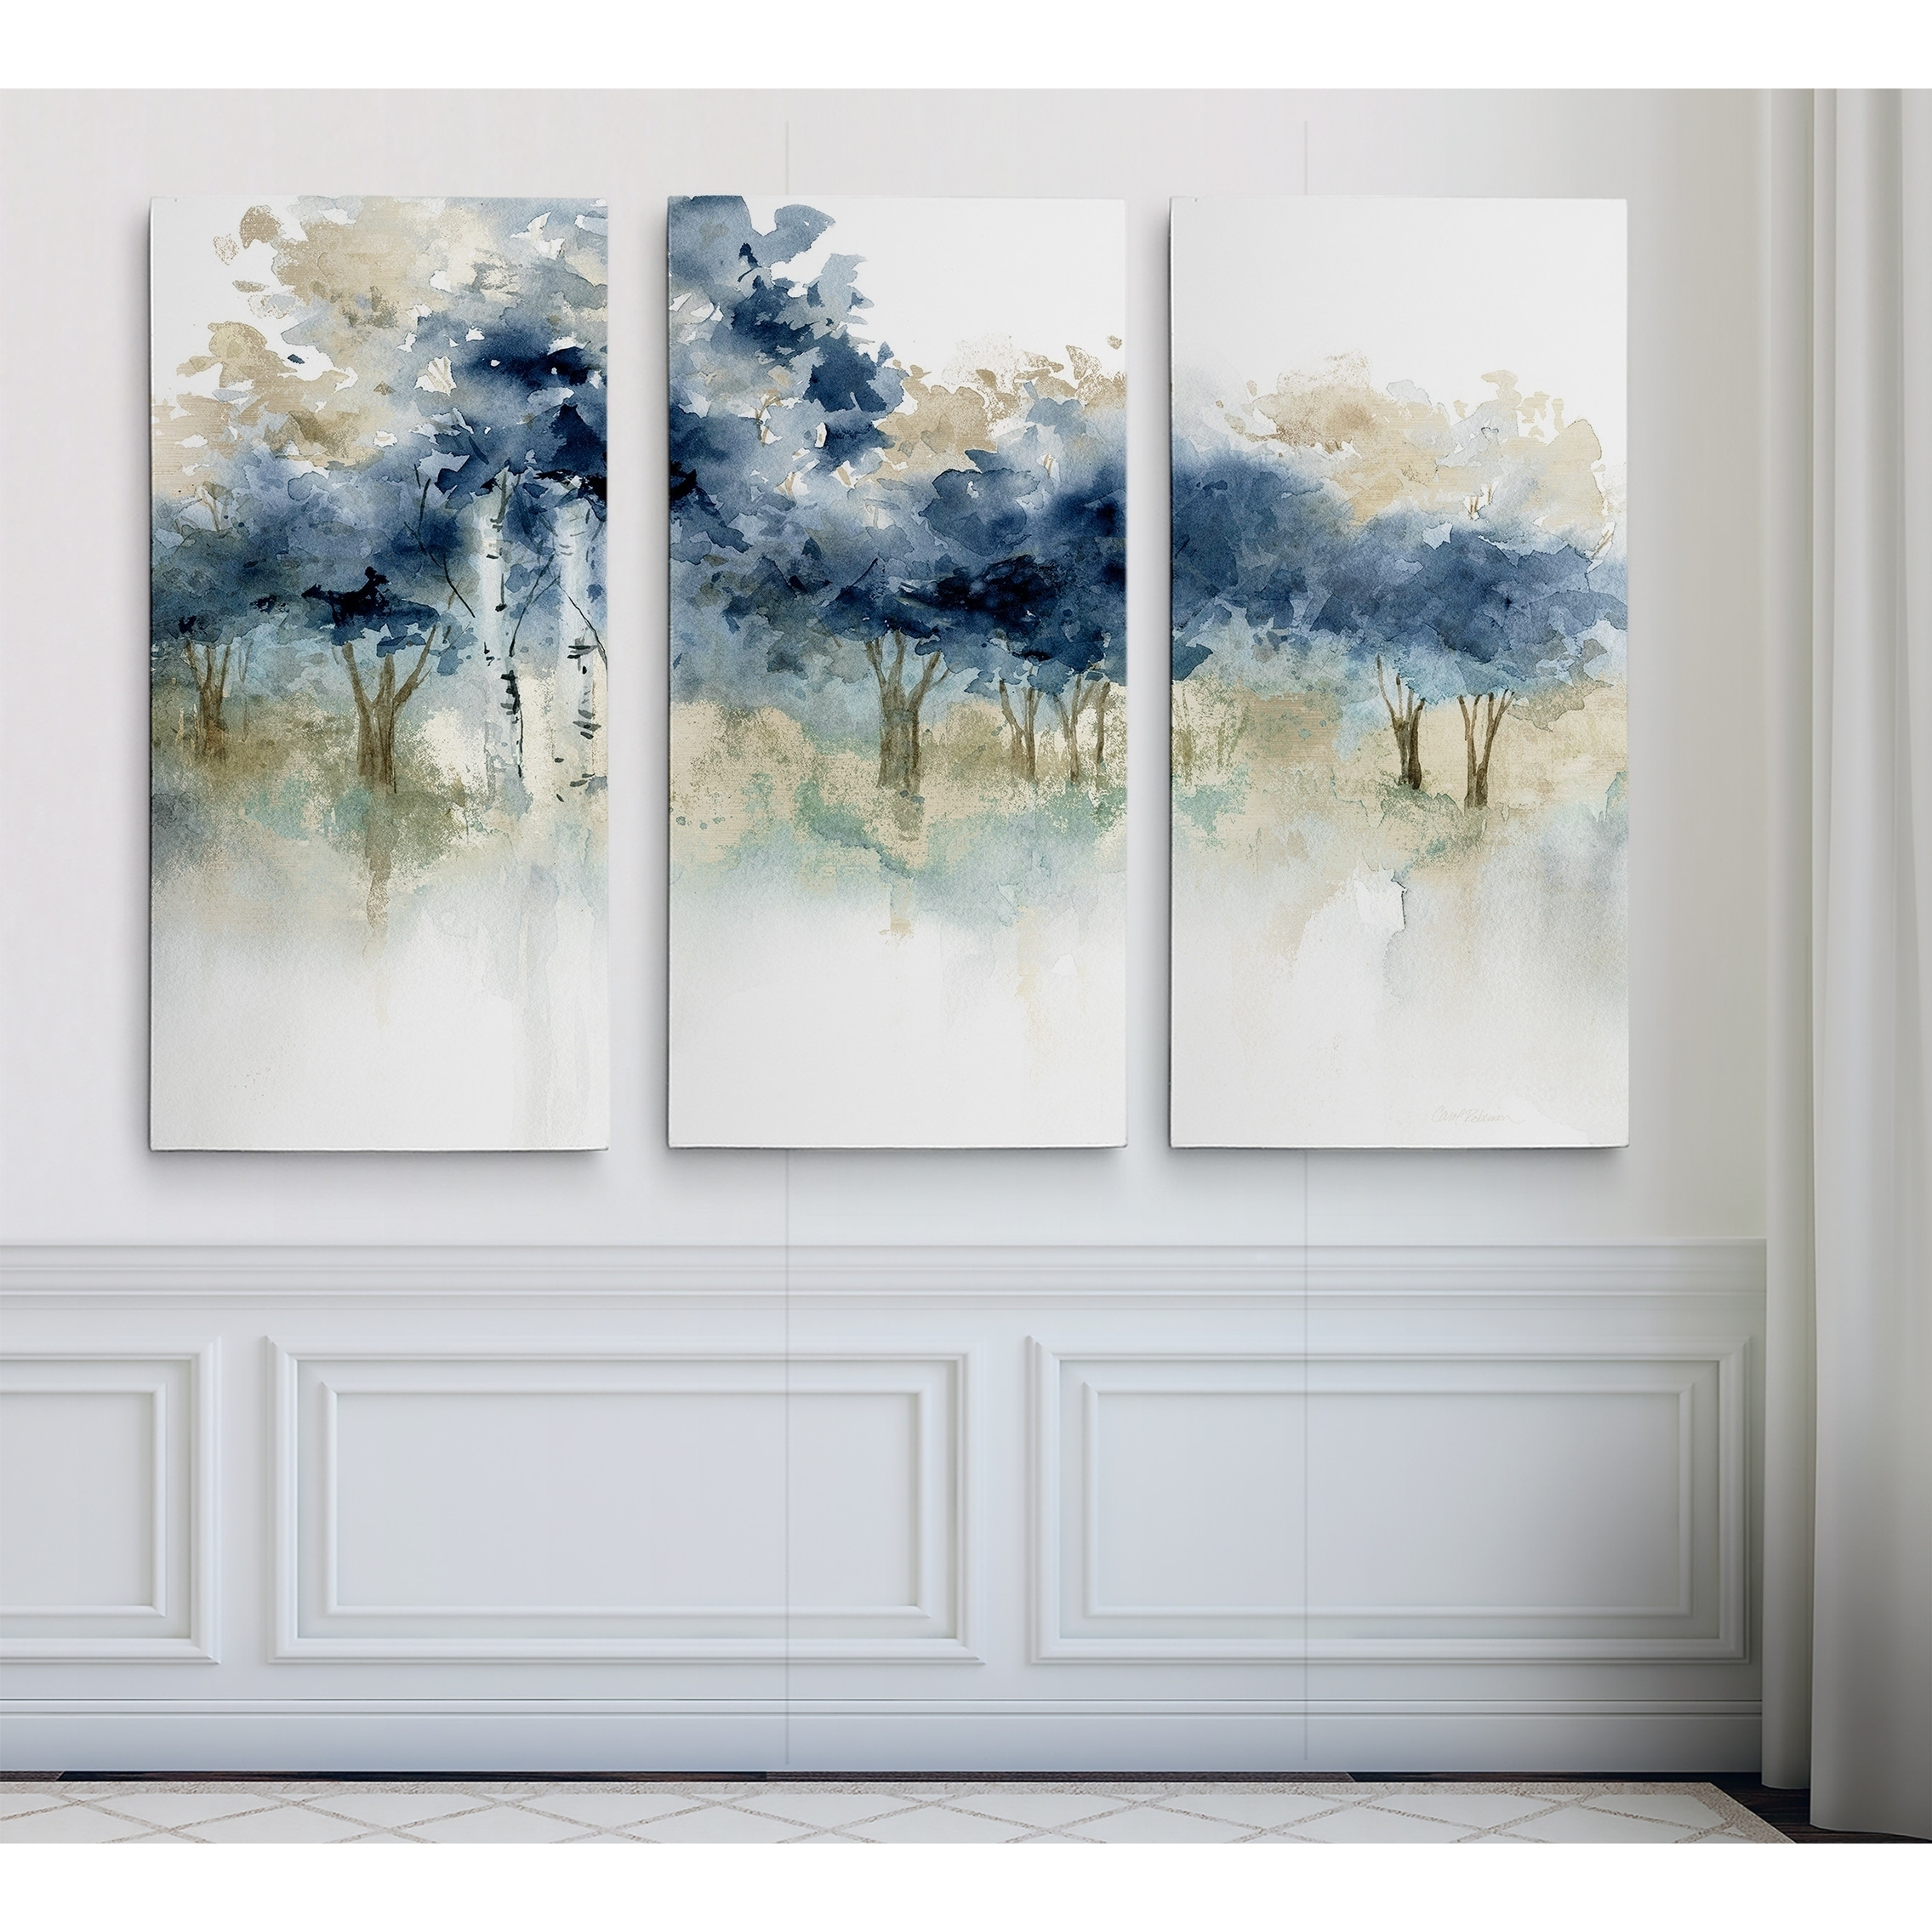 Wall Paintings For Sale Art Gallery Shop Our Best Home Goods Deals Online At Overstock